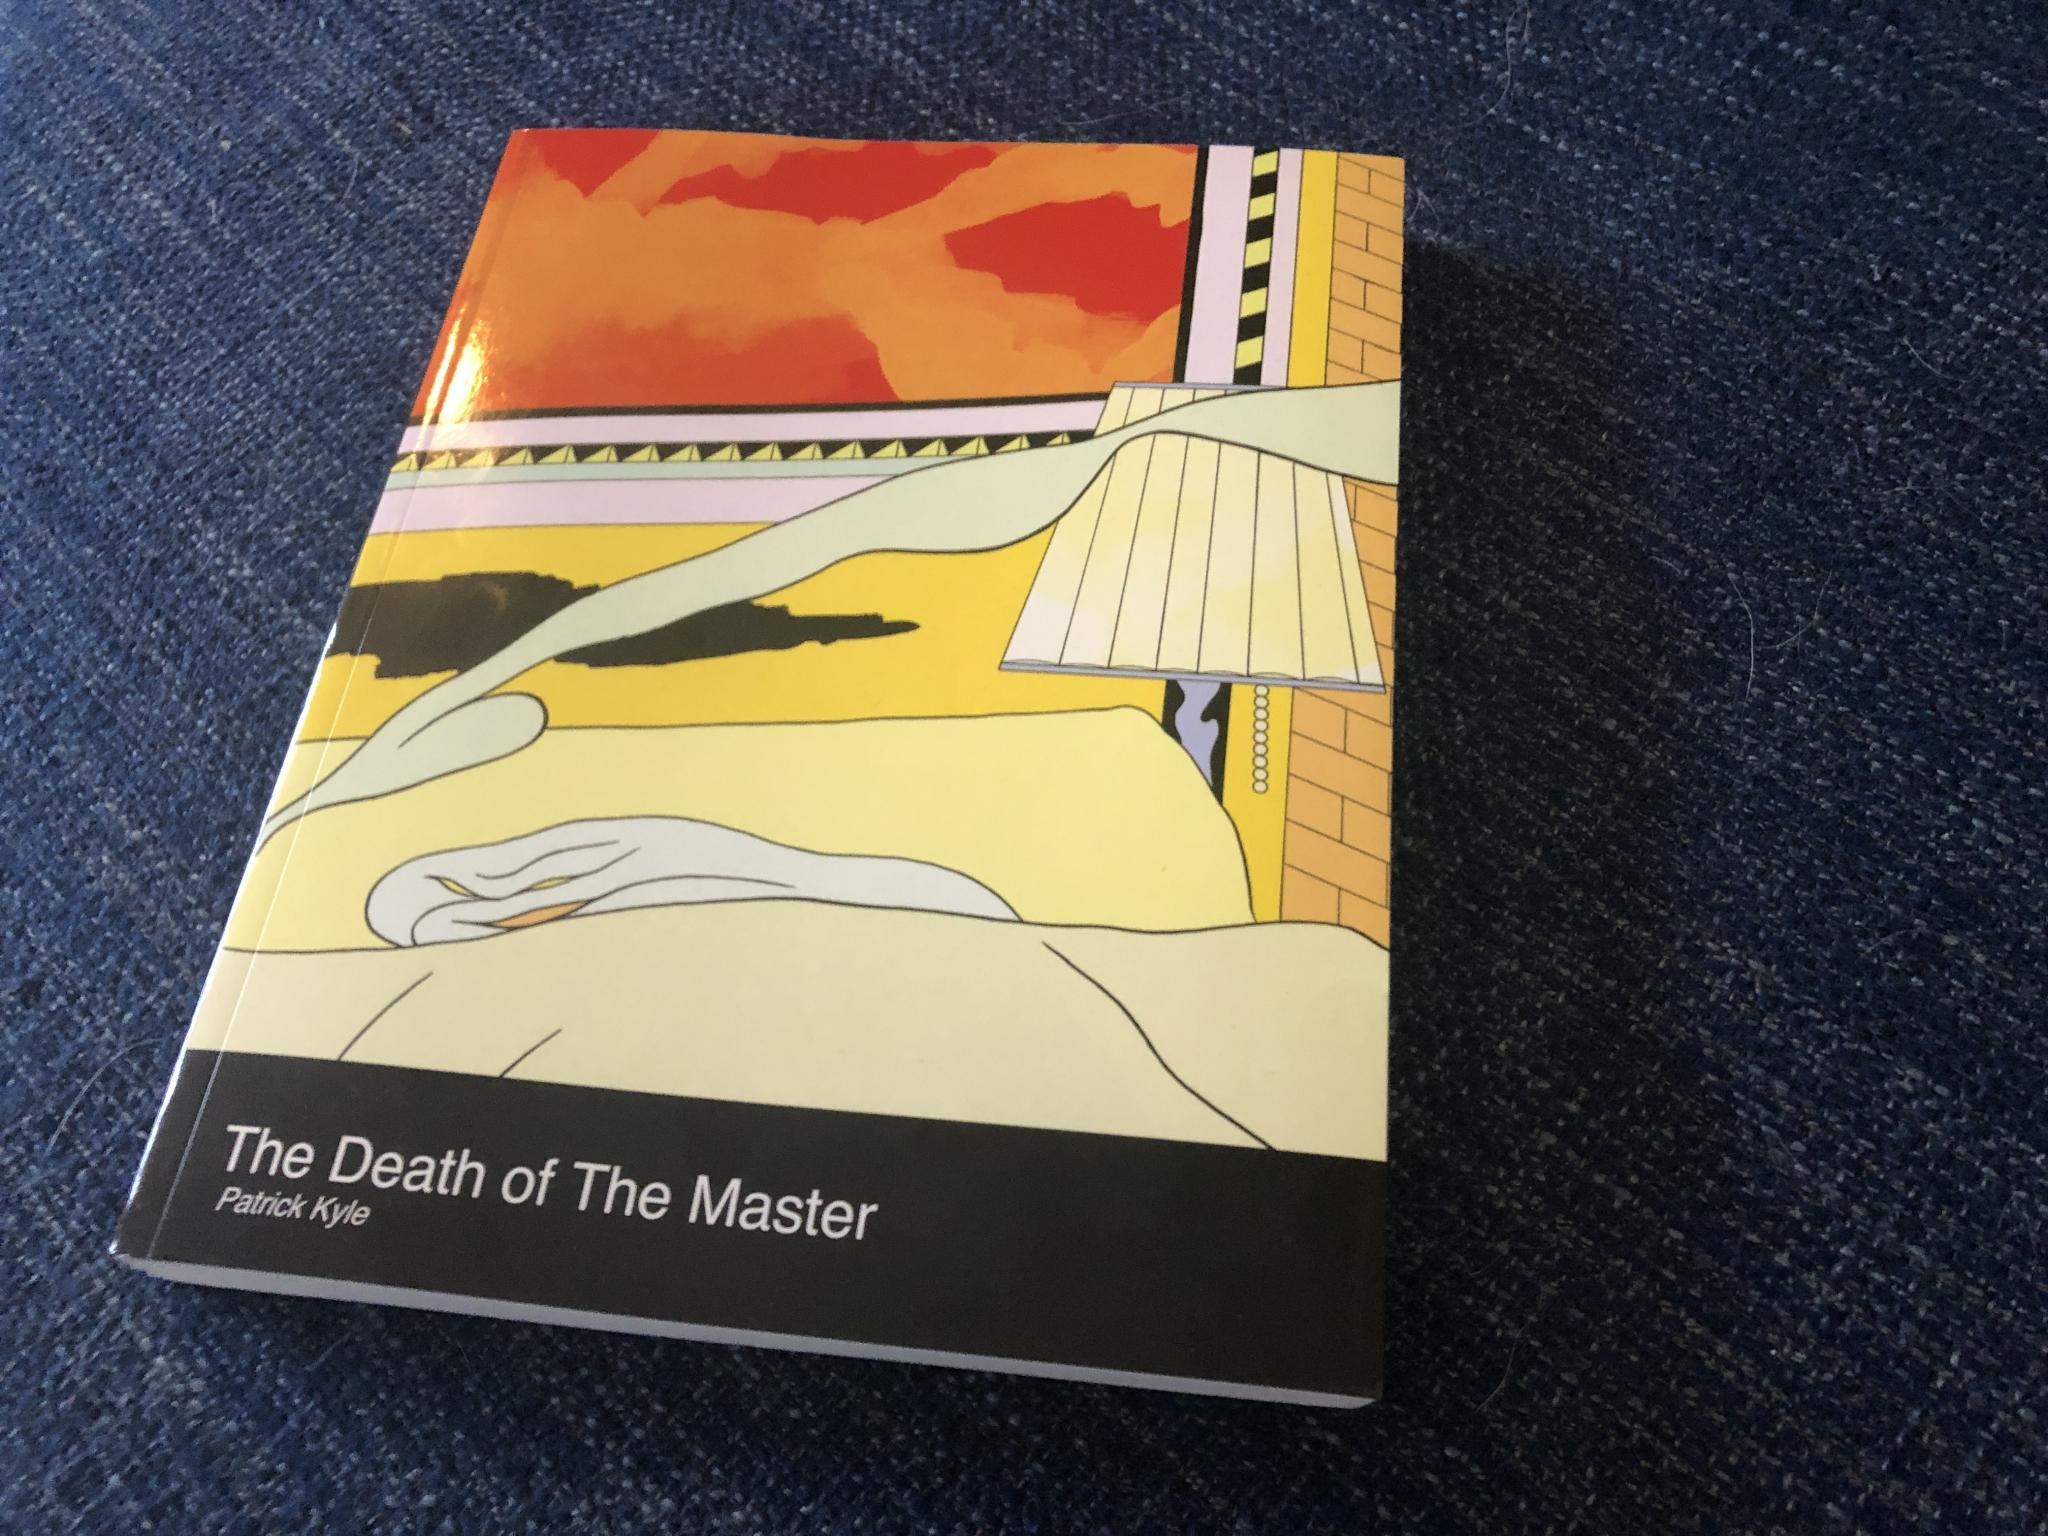 The Death of The Master